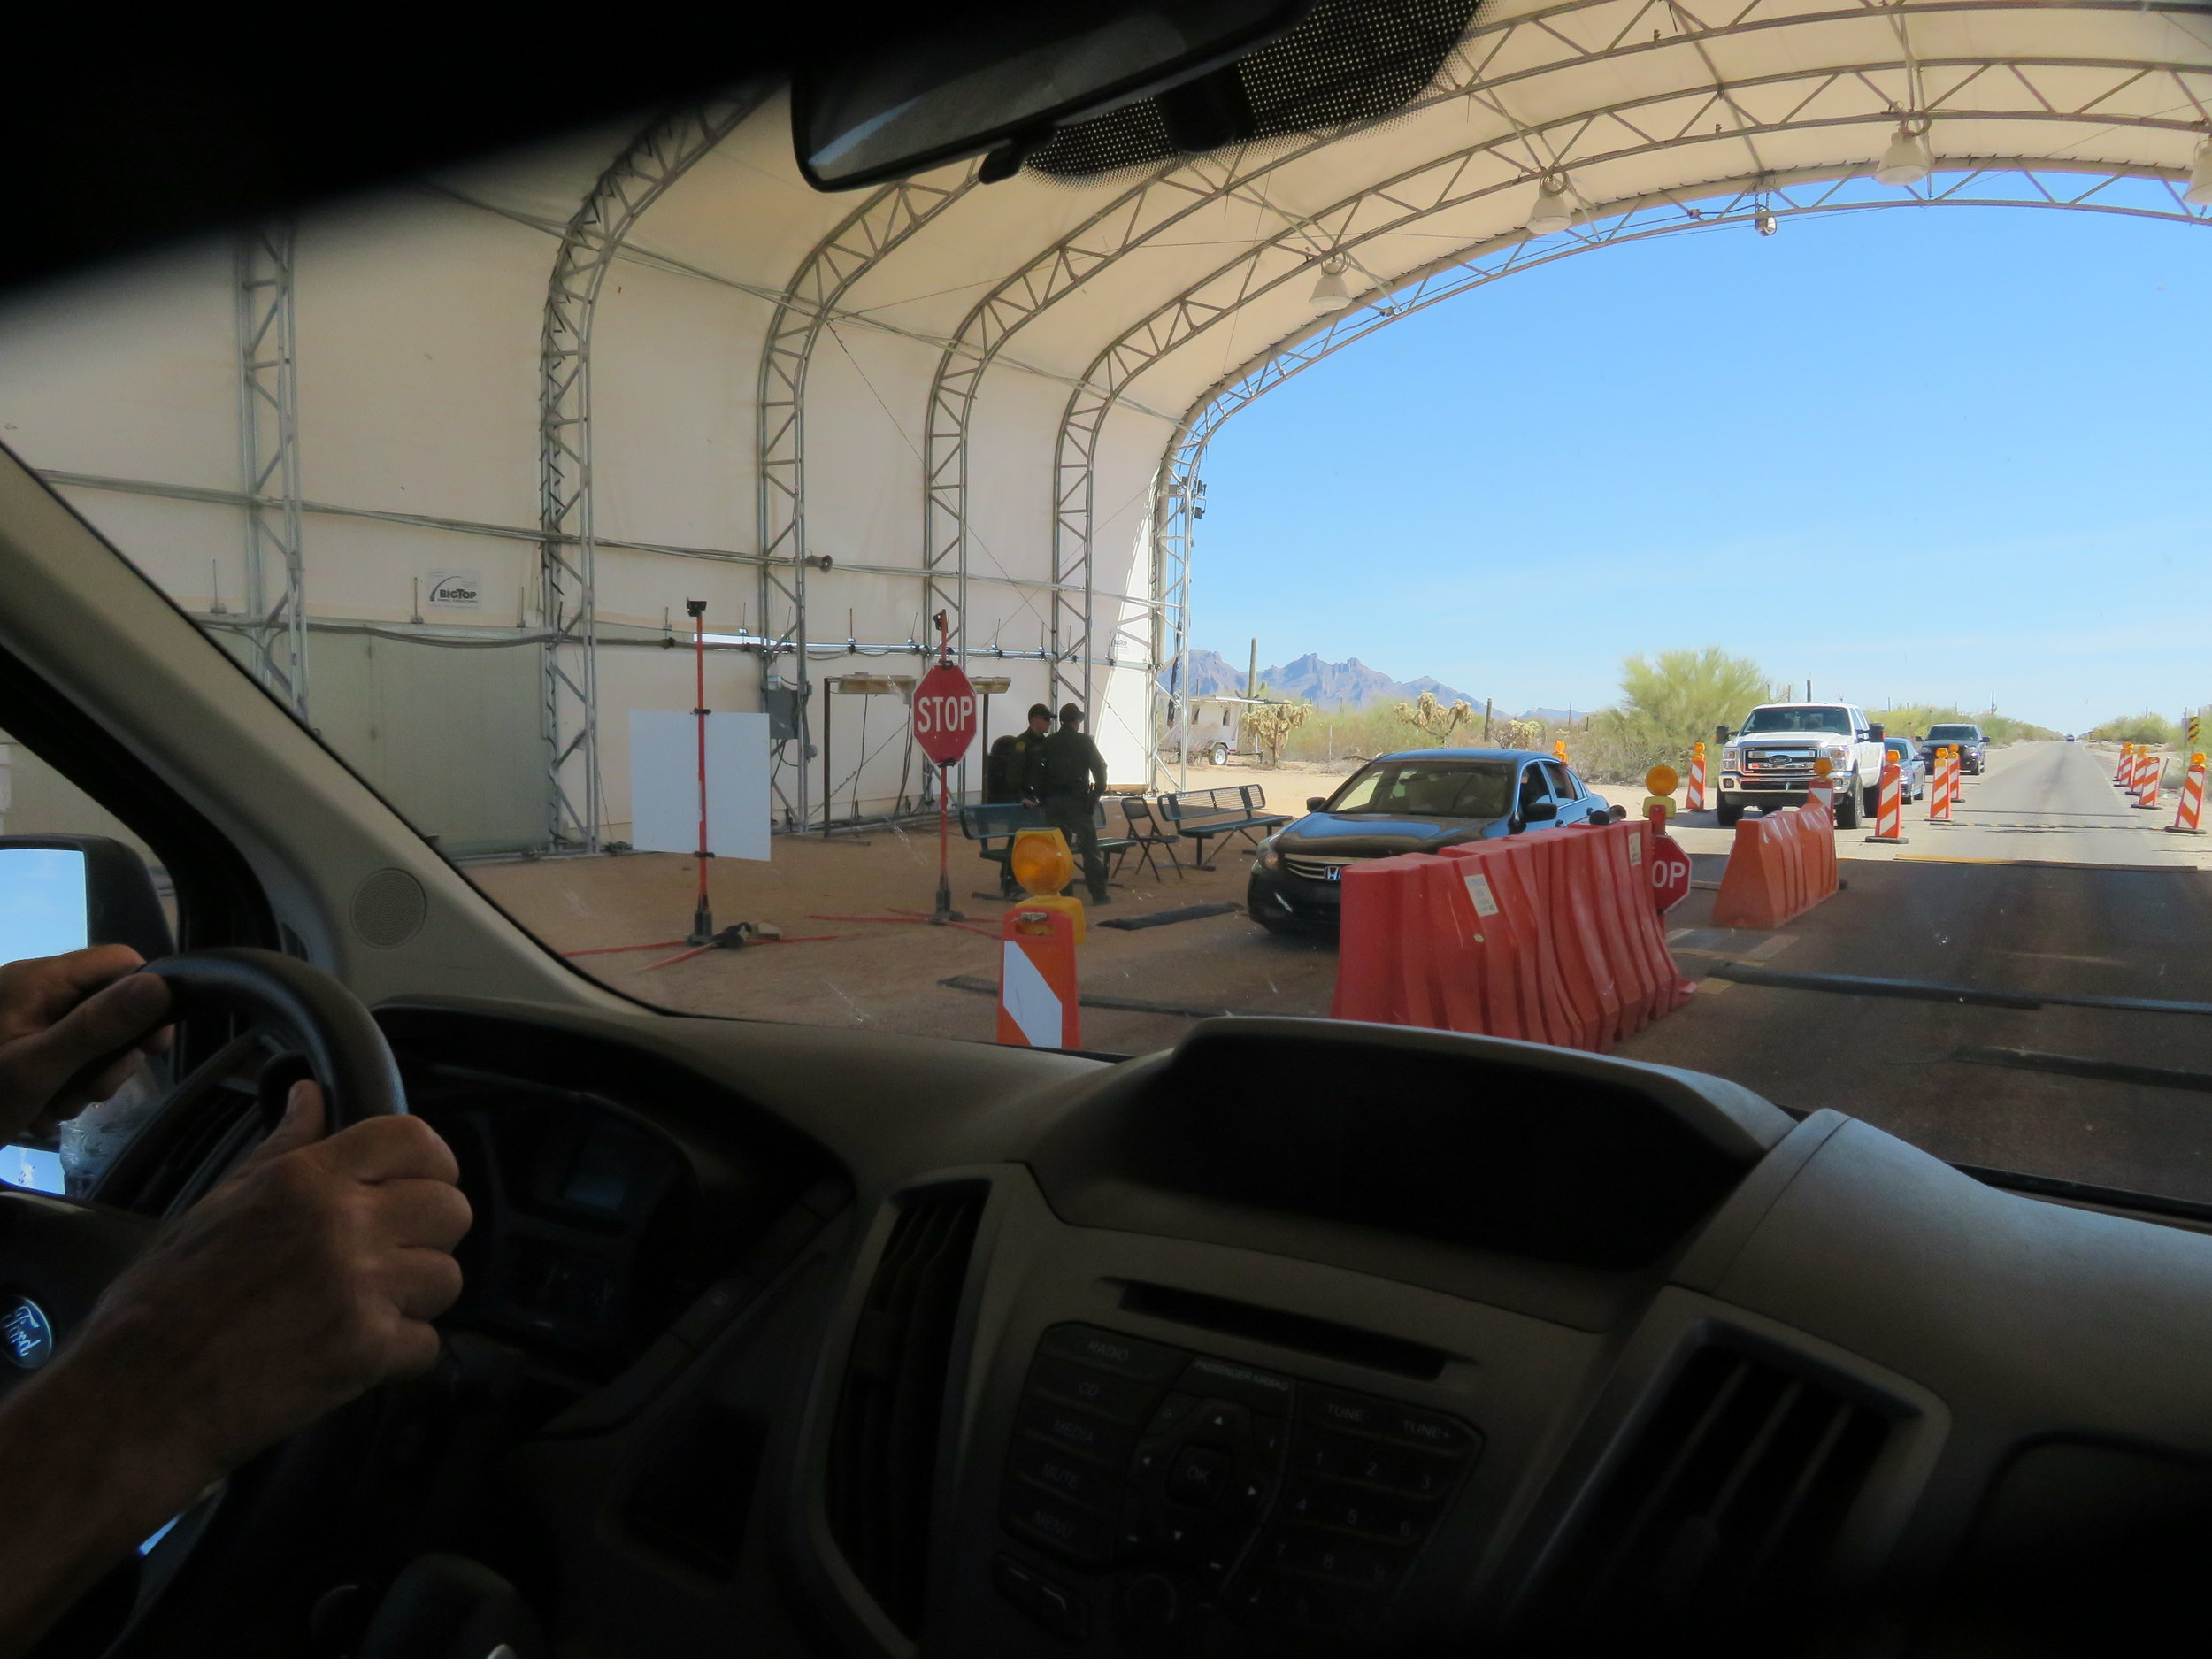 We're not far from Mexico and passed through Border Patrol checkpoints en route.